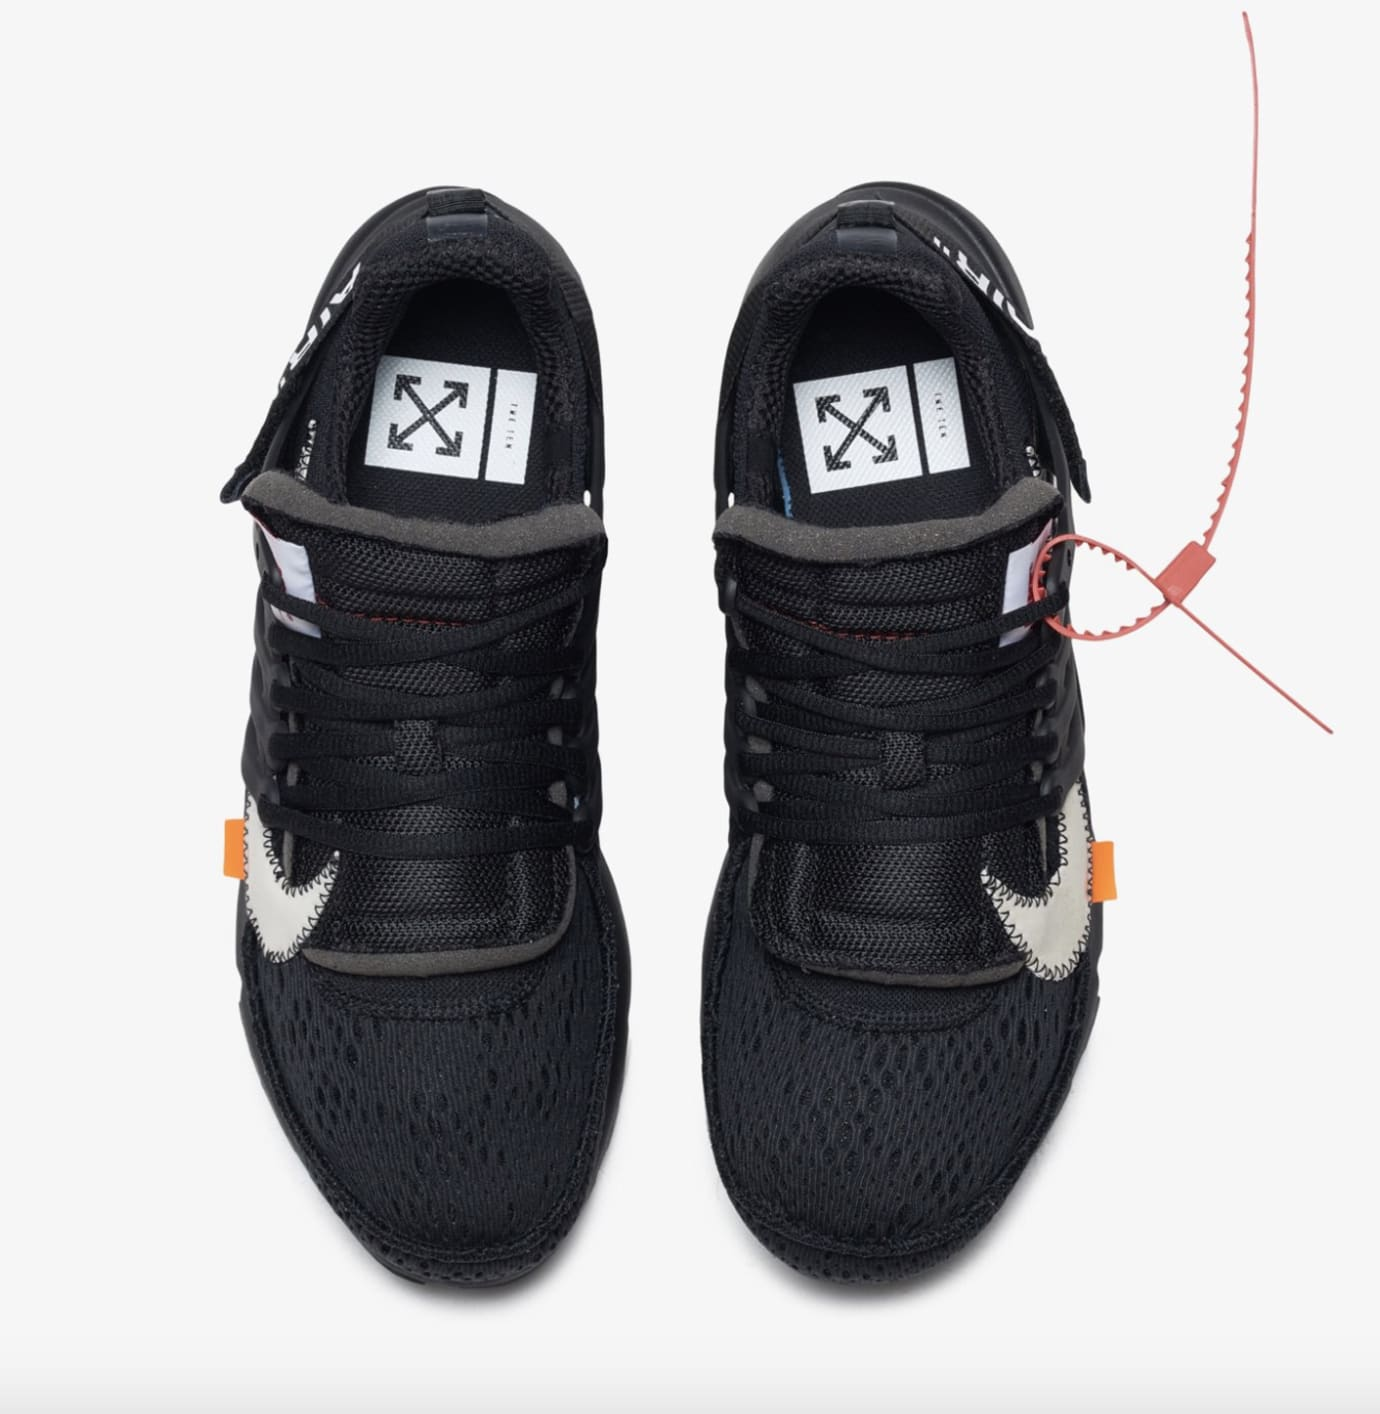 Off-White x Nike Air Presto Black AA3830-002 White AA3830-100